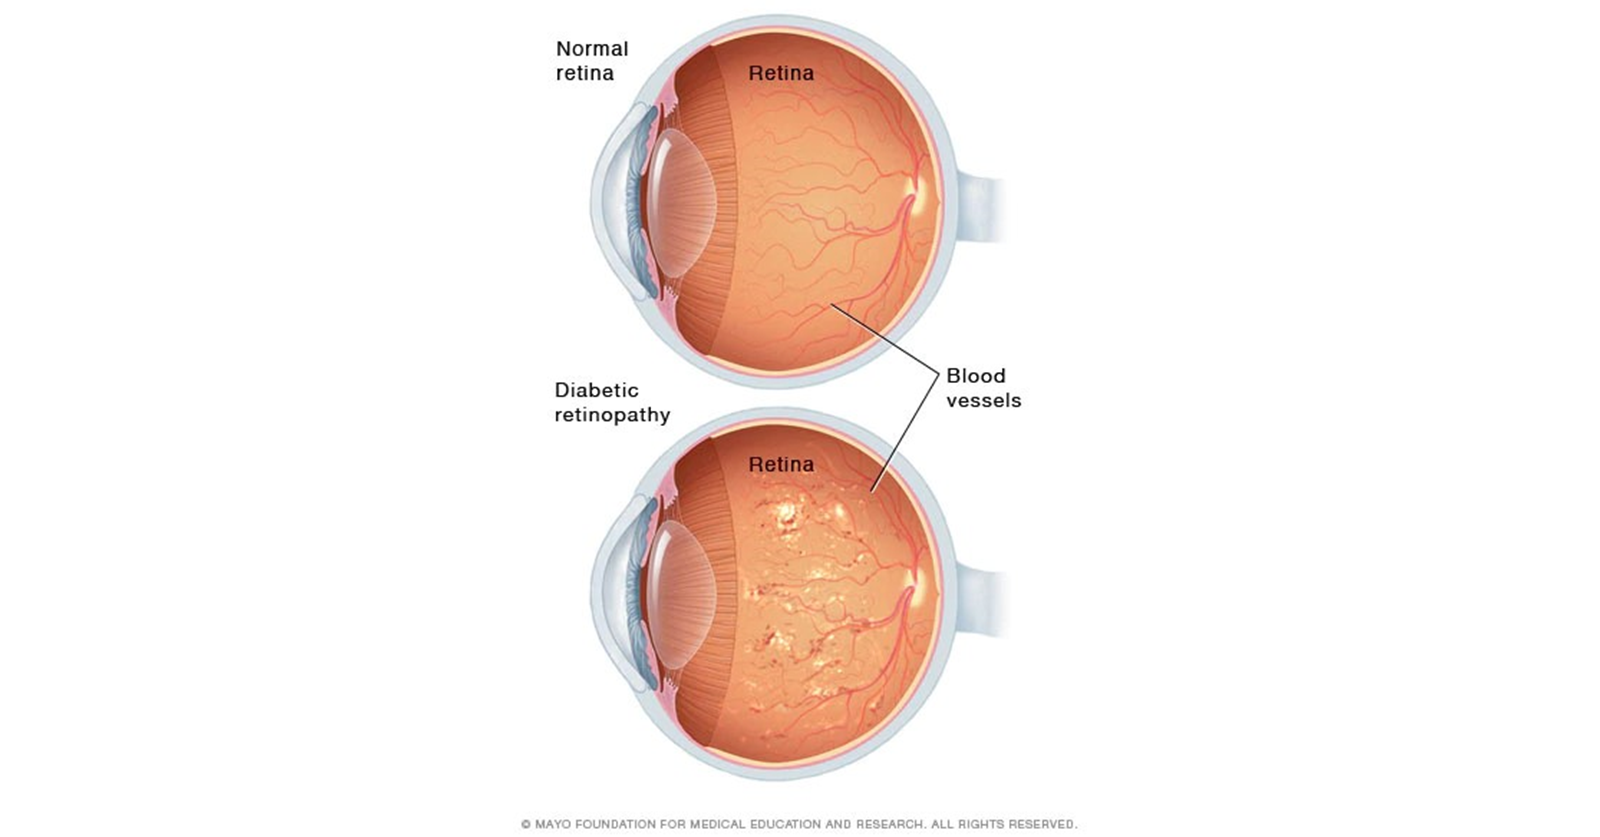 Cross-section image of a normal retina vs retina with diabetic retinopathy. Credit: Mayo Foundation for Medical Education and Research, All Rights Reserved.